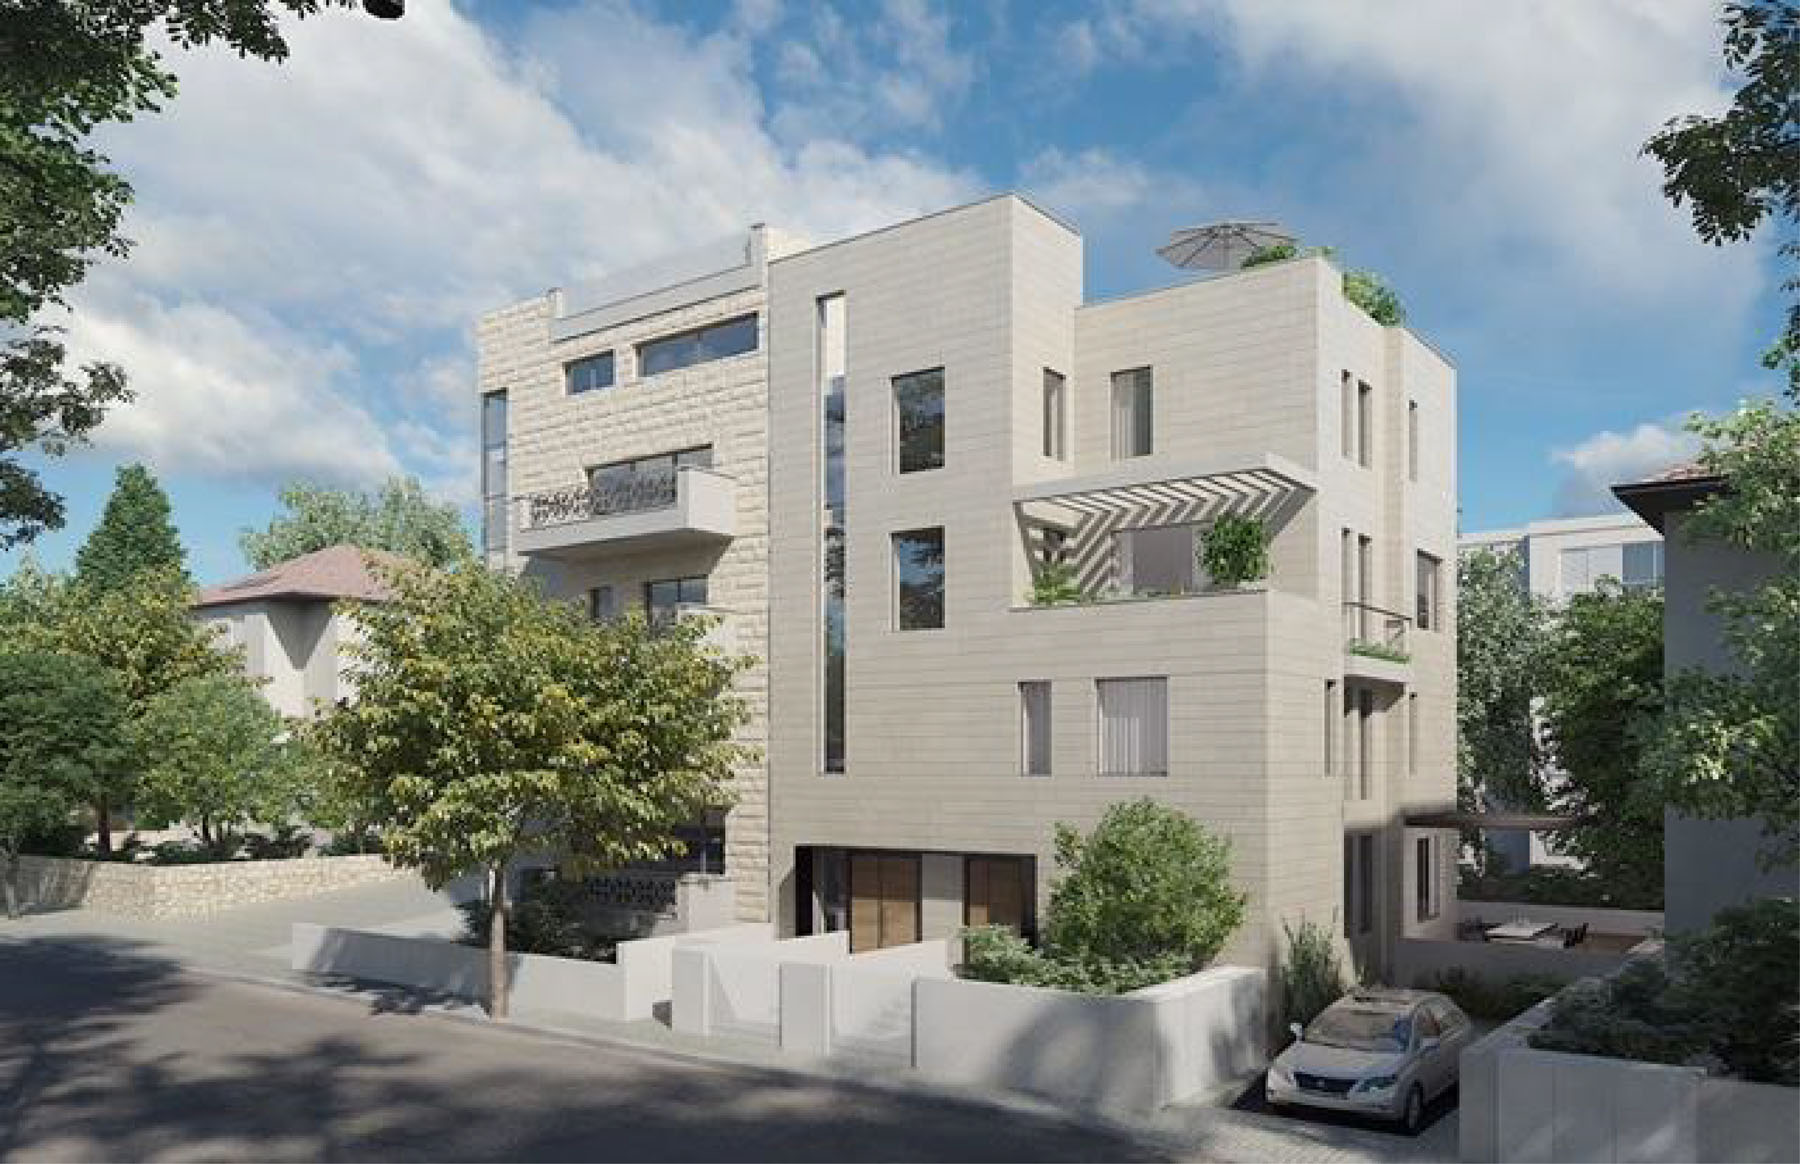 Apartamento por un Venta en Luxury Apartments in Rehavia Jerusalem, Israel Israel